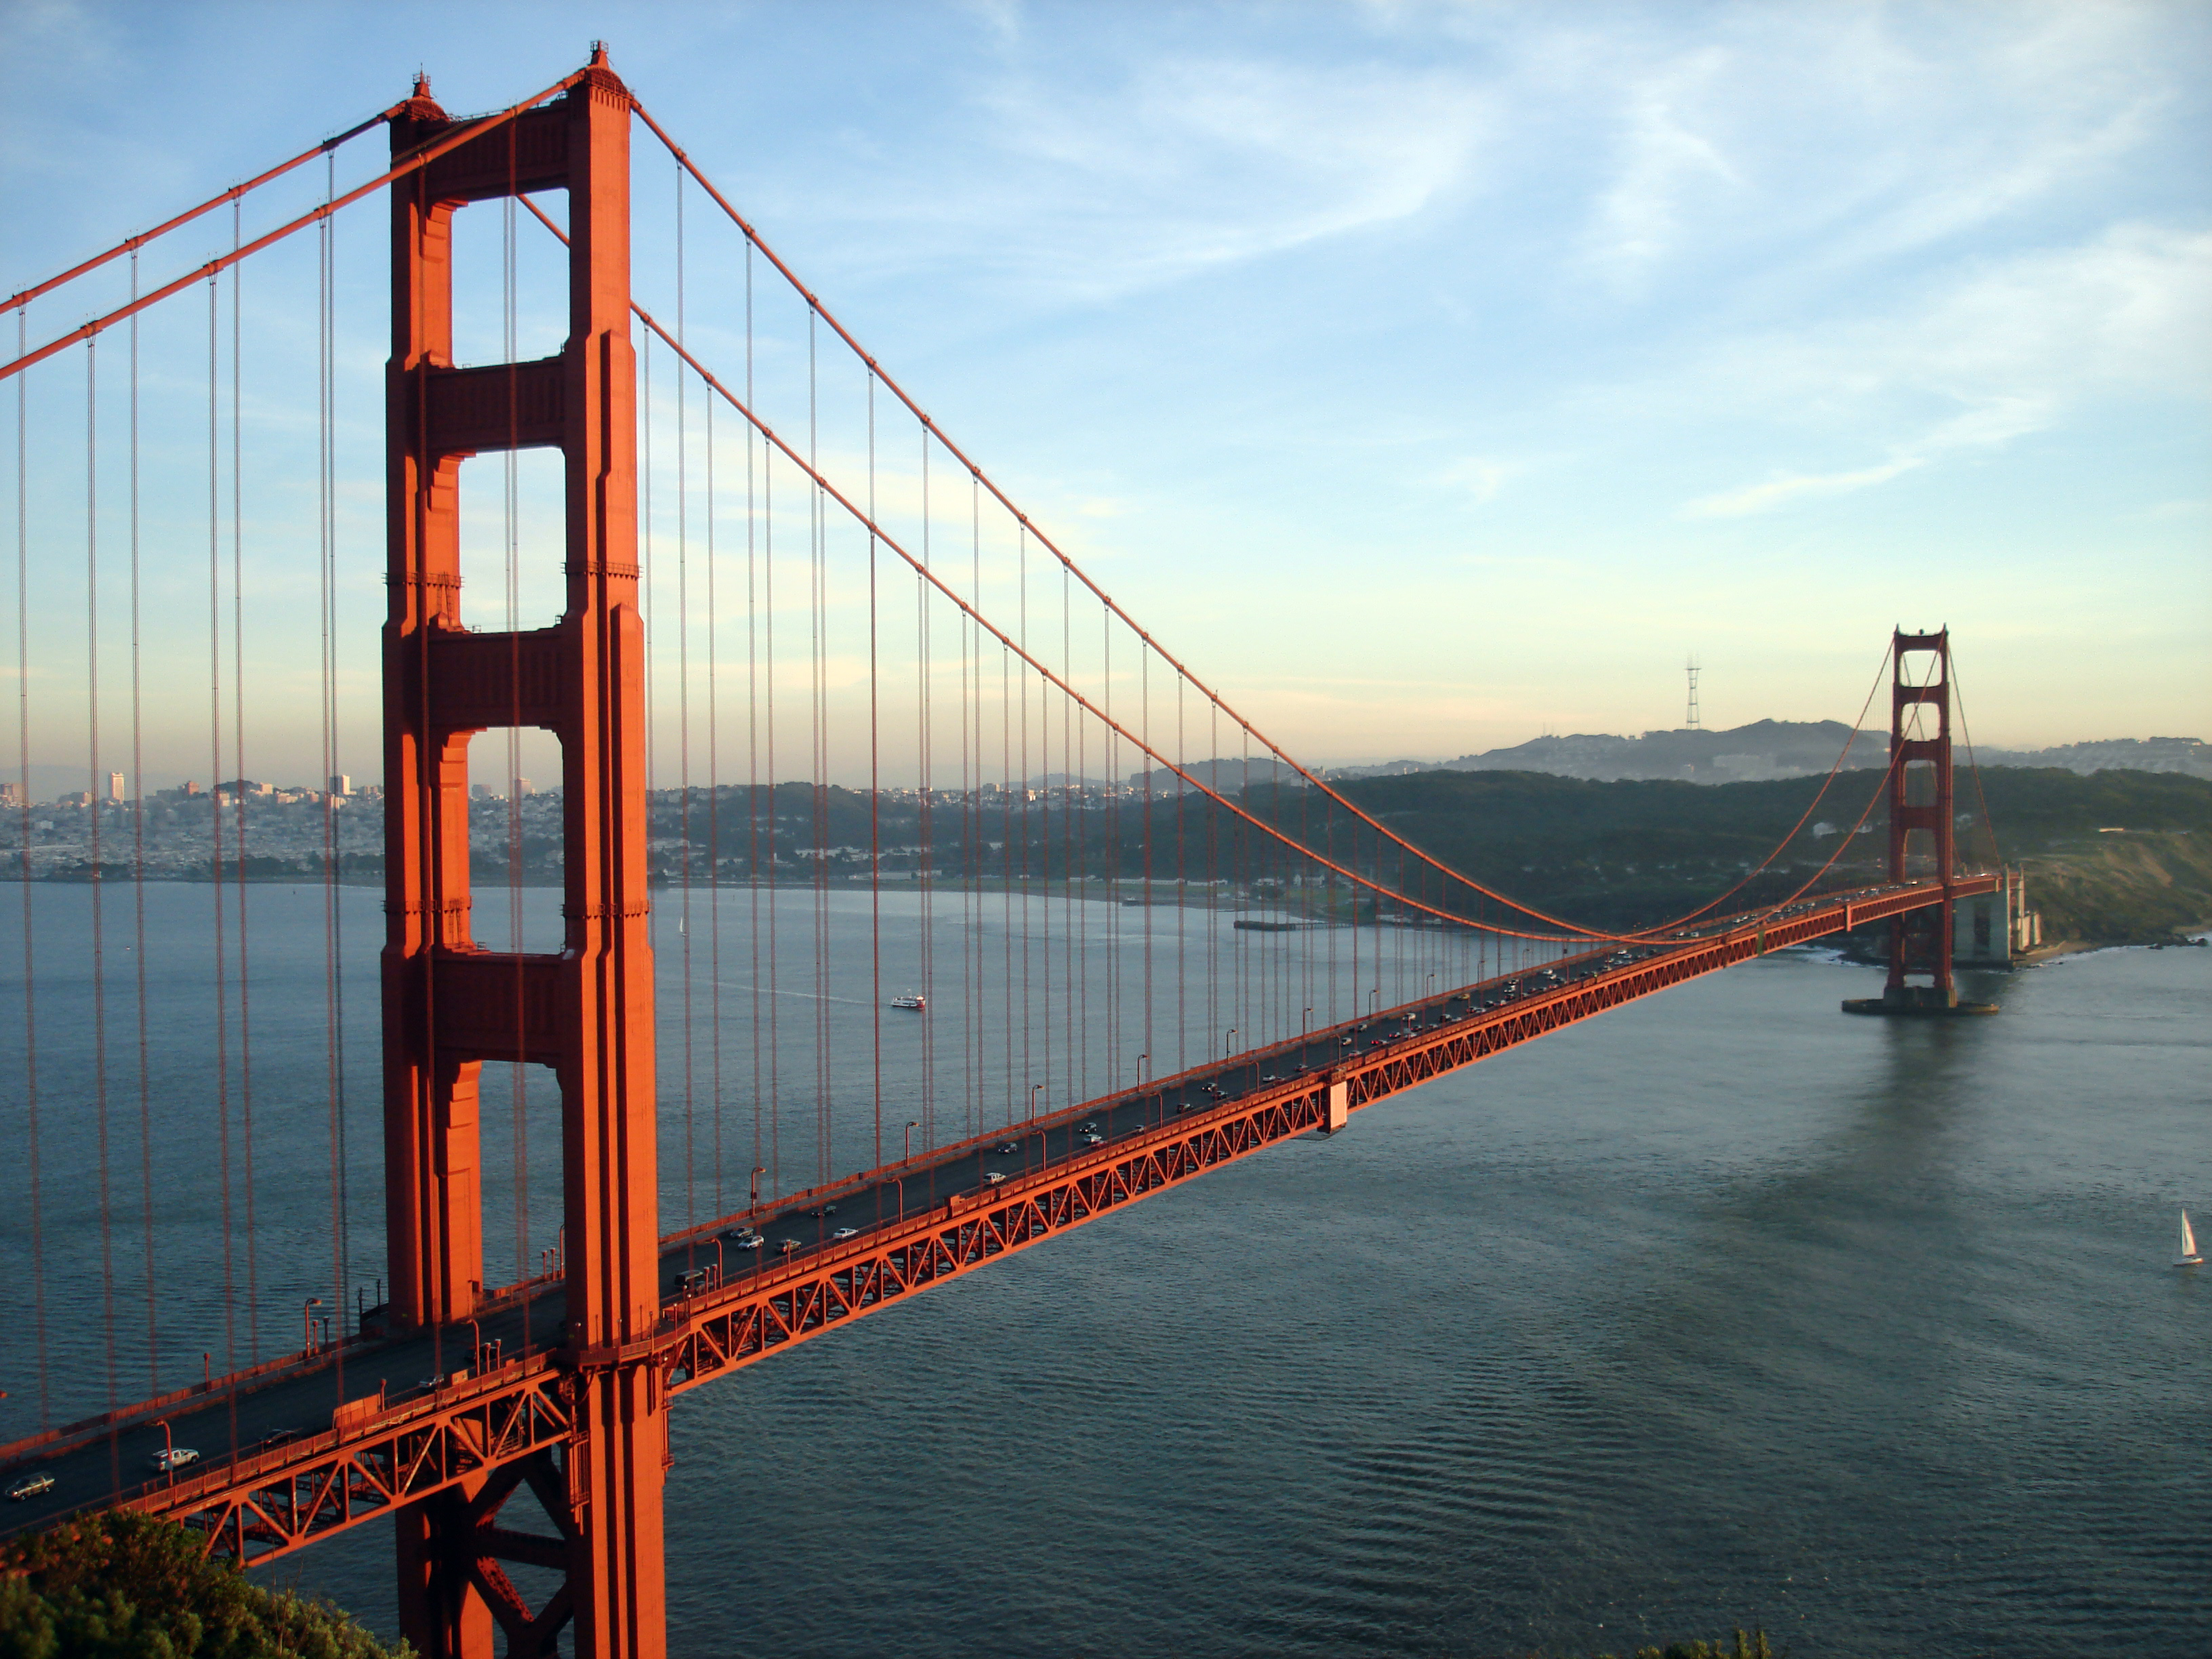 Golden Gate Bridge can withstand bigger than a 7.0-scale earthquake (Author: Rich Niewiroski Jr., source: http://www.projectrich.com/gallery)